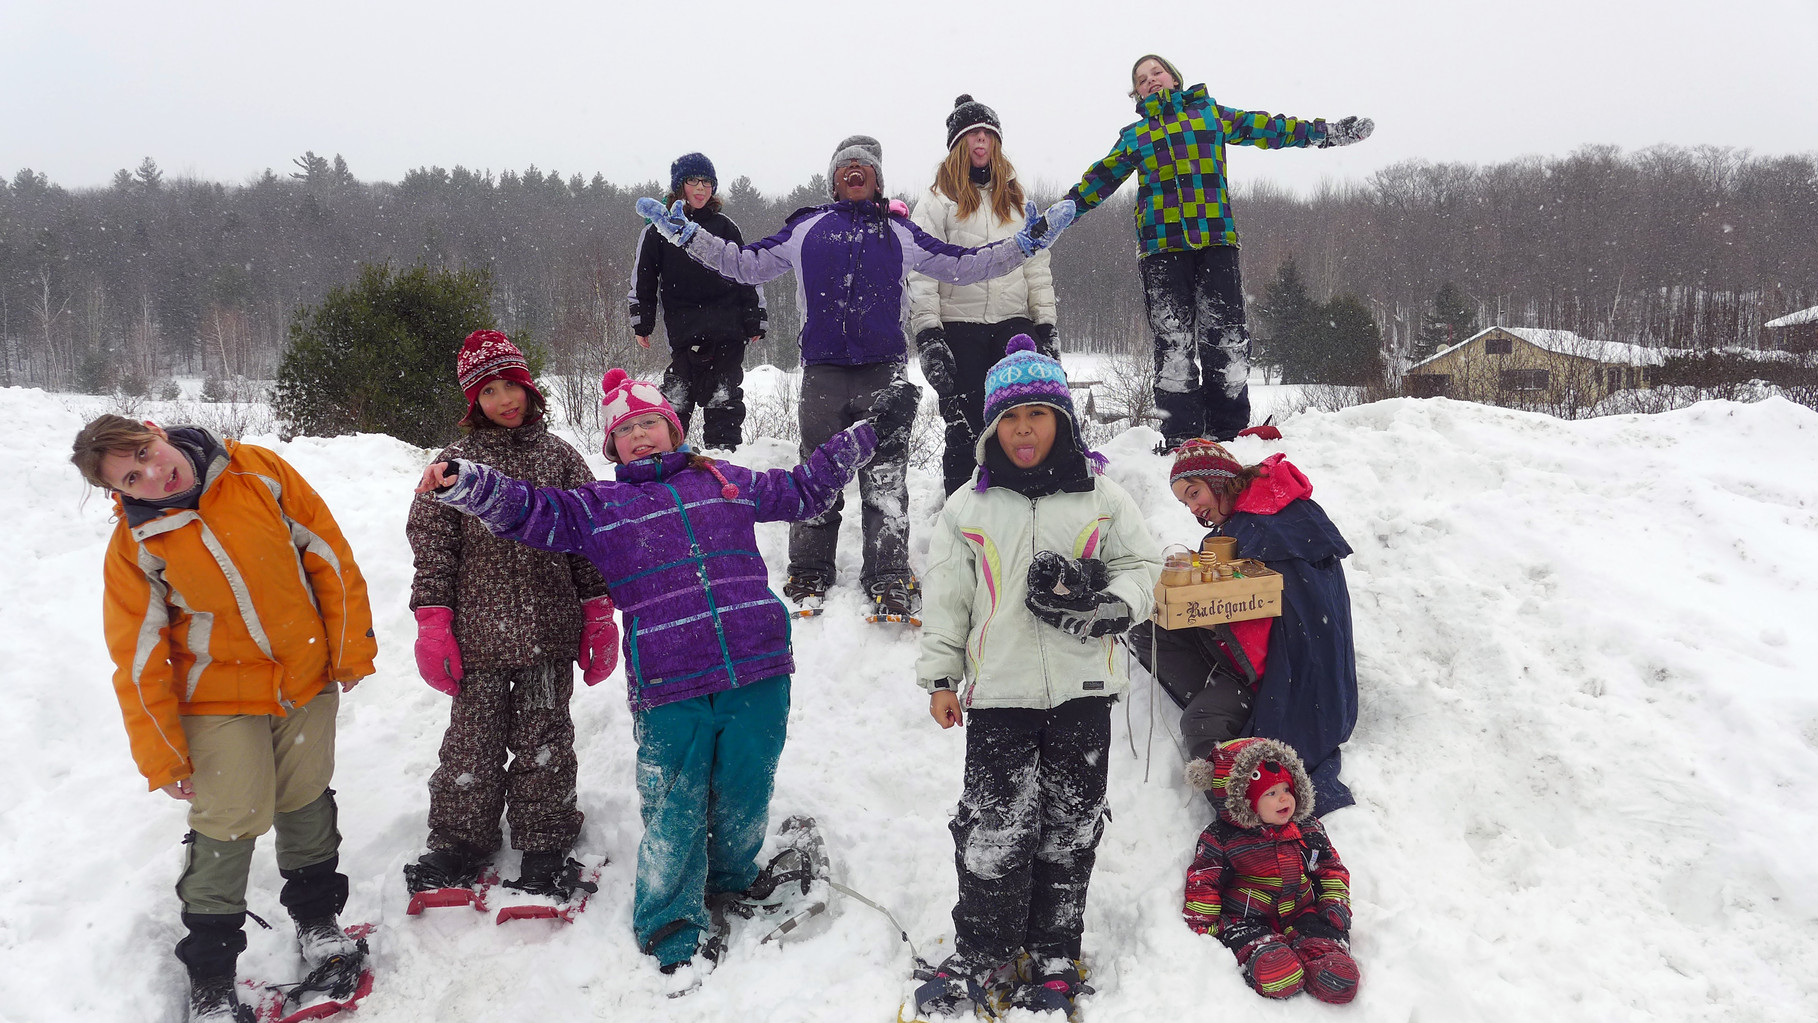 Excursion en raquettes en camp d'hiver